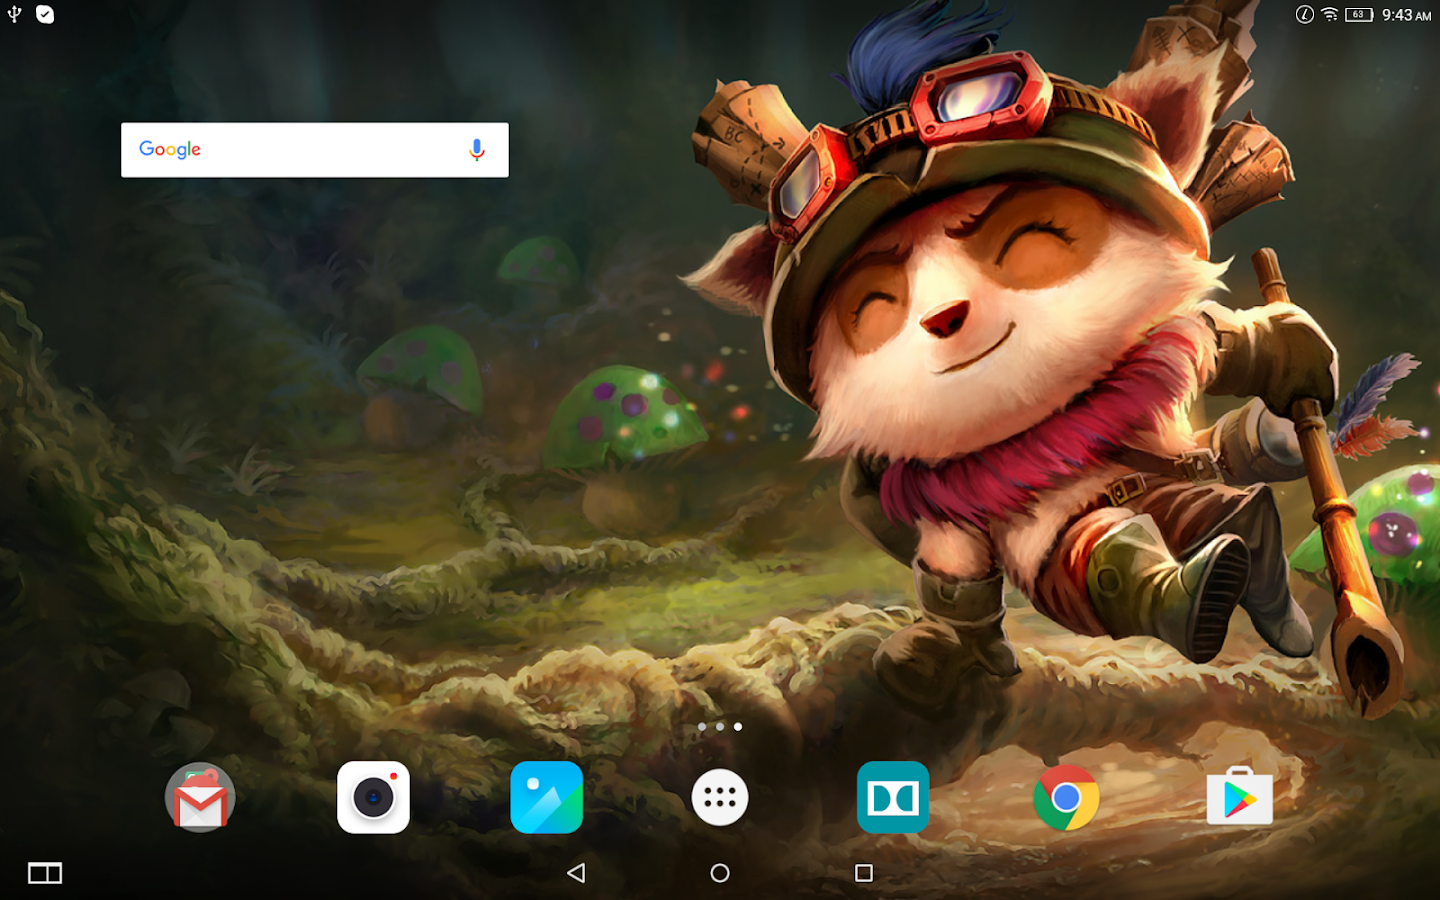 Teemo HD Live Wallpapers  screenshotTeemo HD Live Wallpapers   Android Apps on Google Play. Lol Live Wallpaper Hd Apk. Home Design Ideas